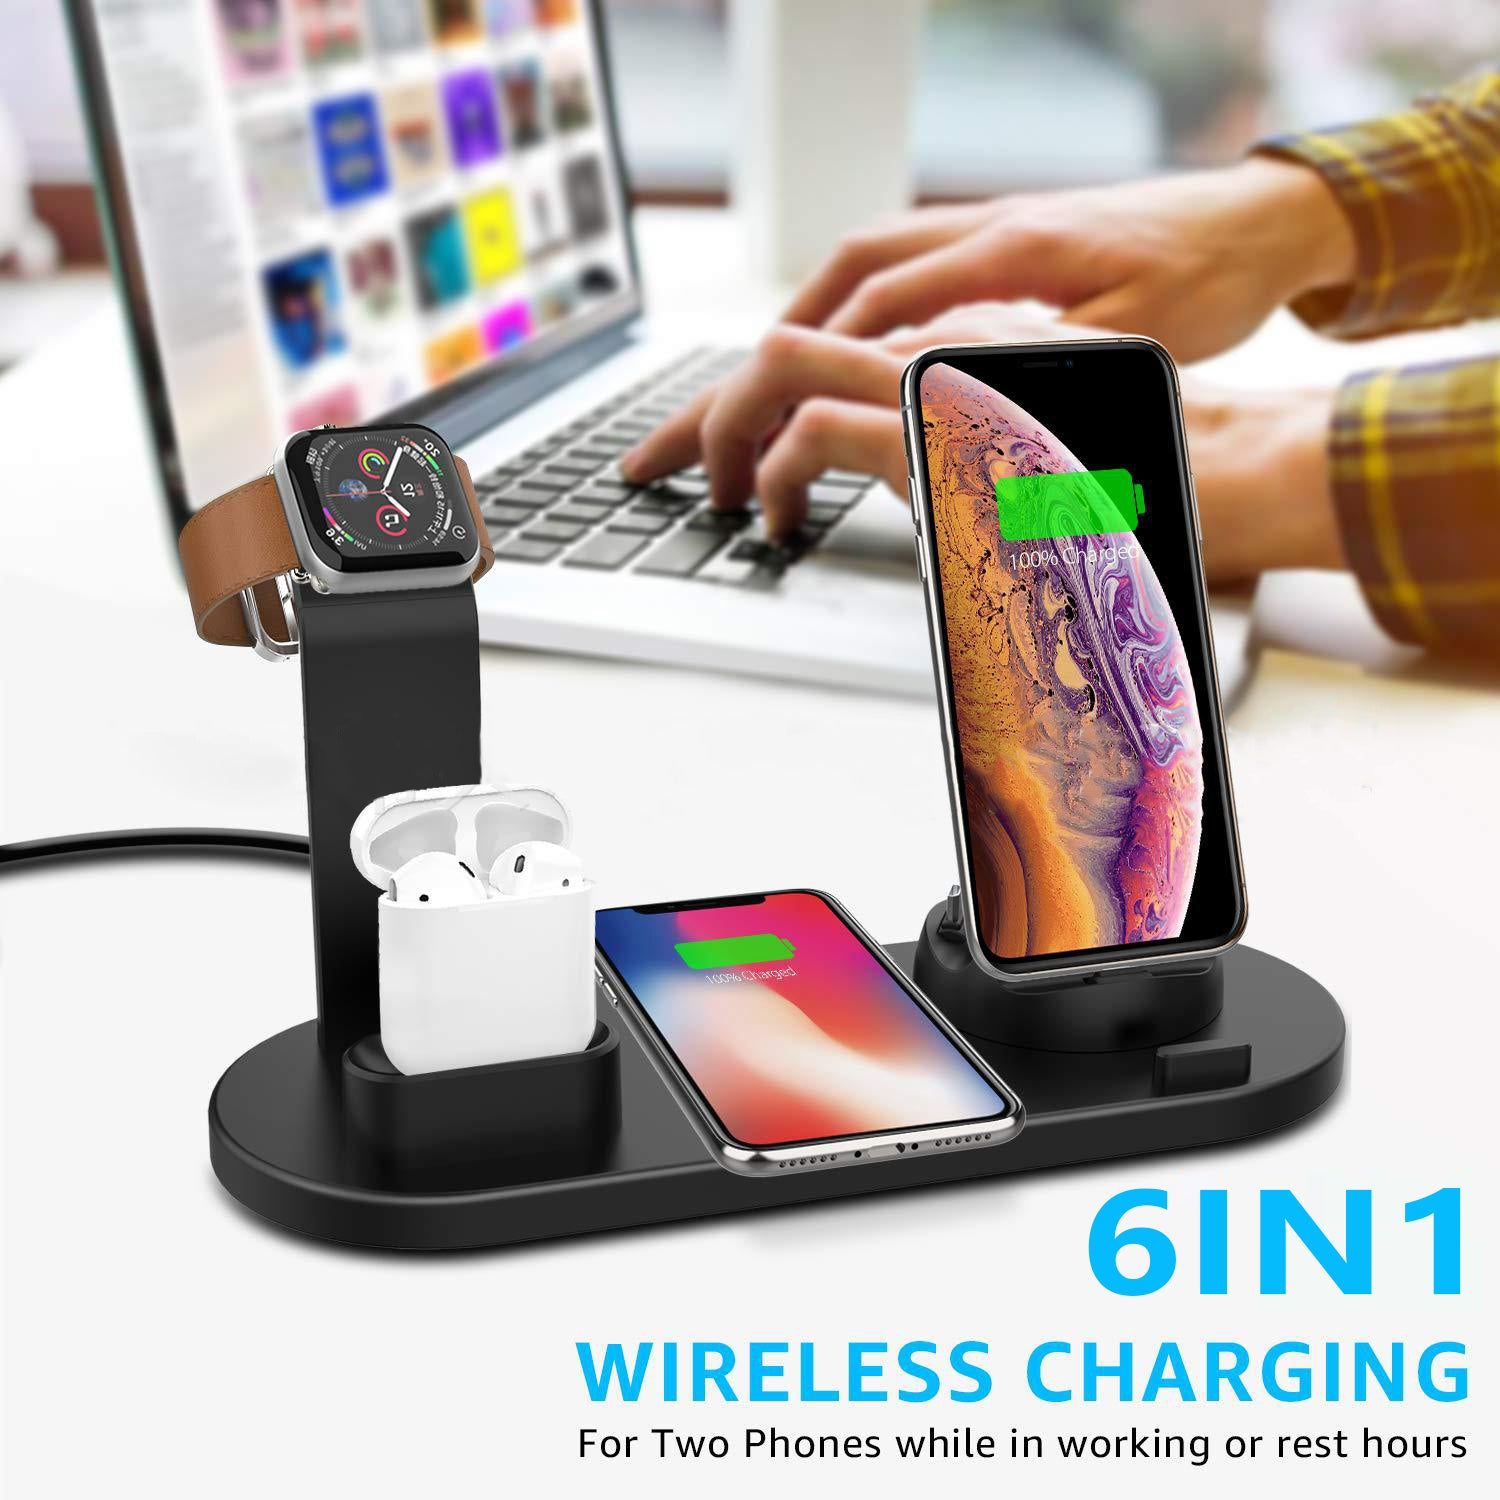 6 in 1 Multi-function Charger Station (BUY 2 FREE SHIPPING)